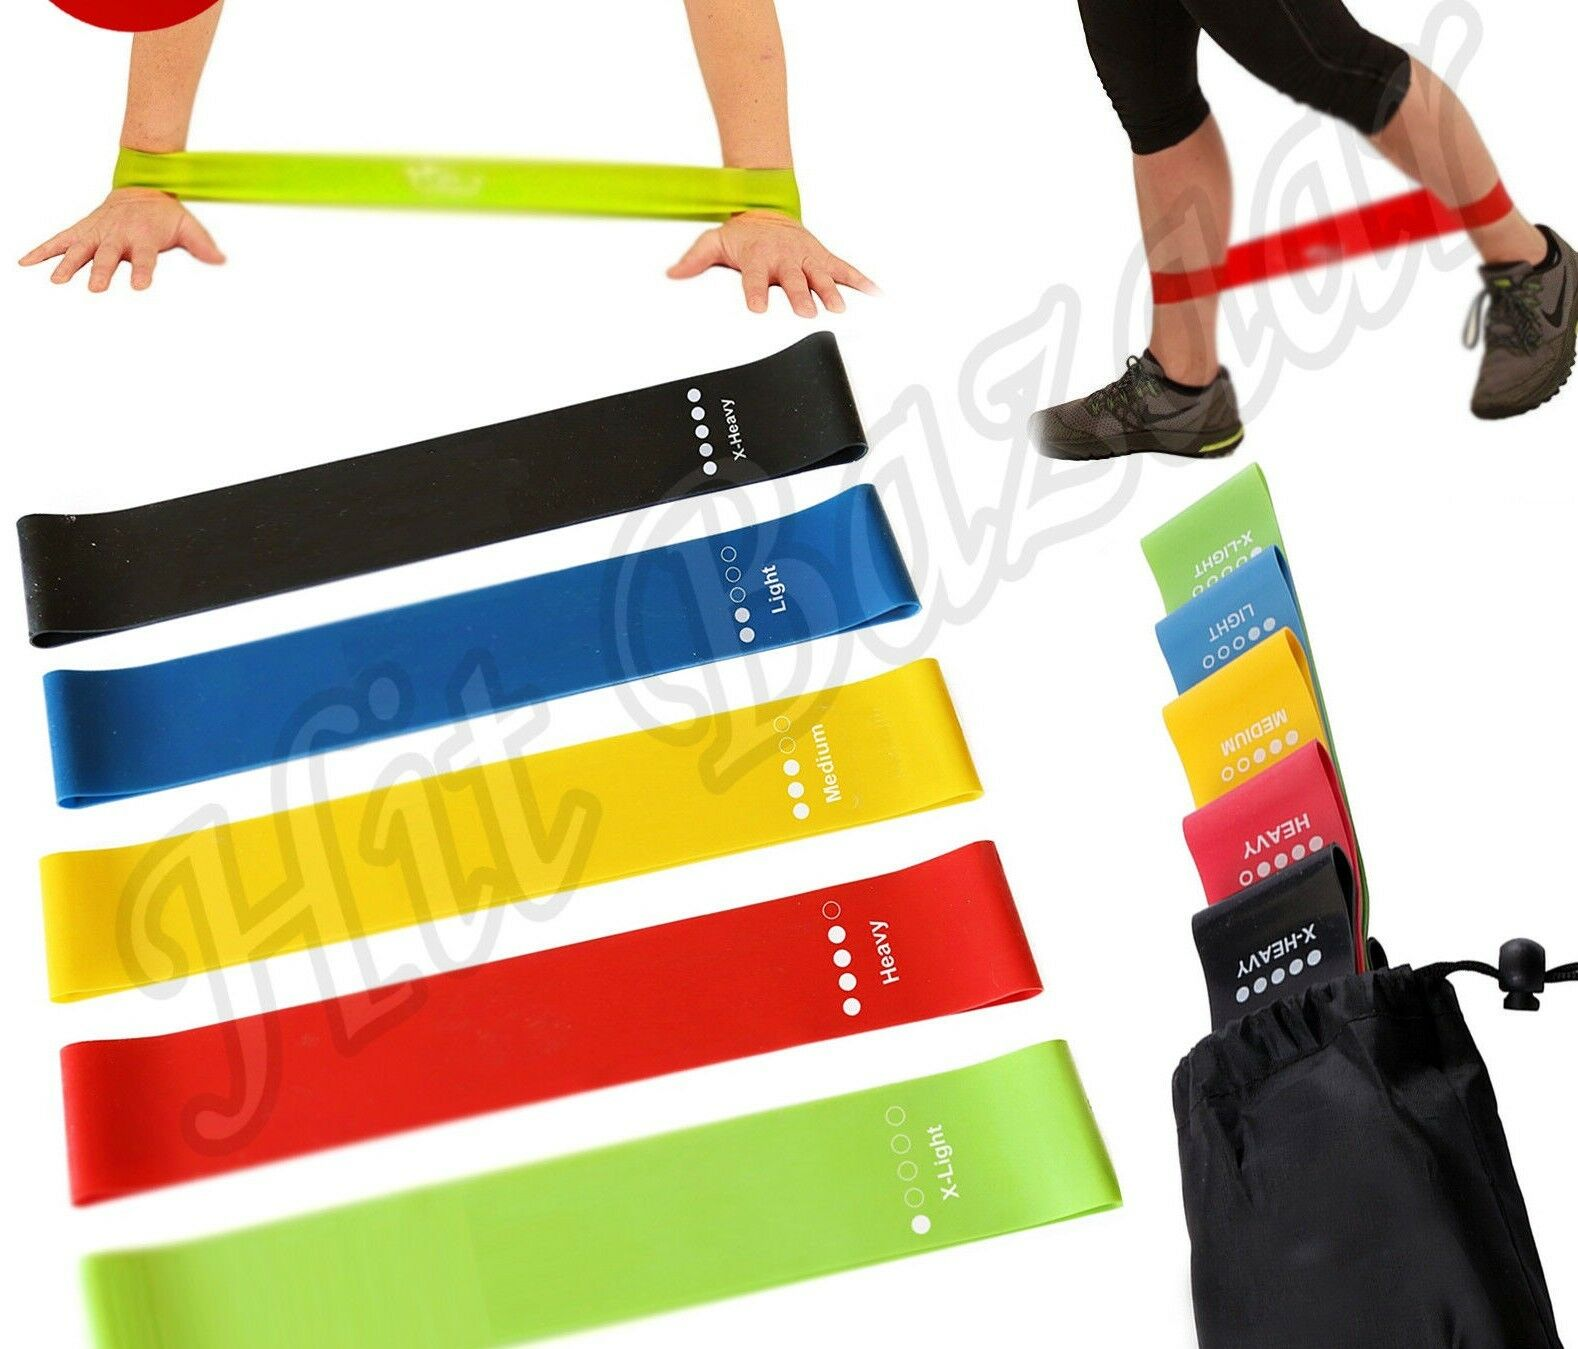 5 RESISTANCE BANDS LOOP Exercise Yoga Training Fitness Home